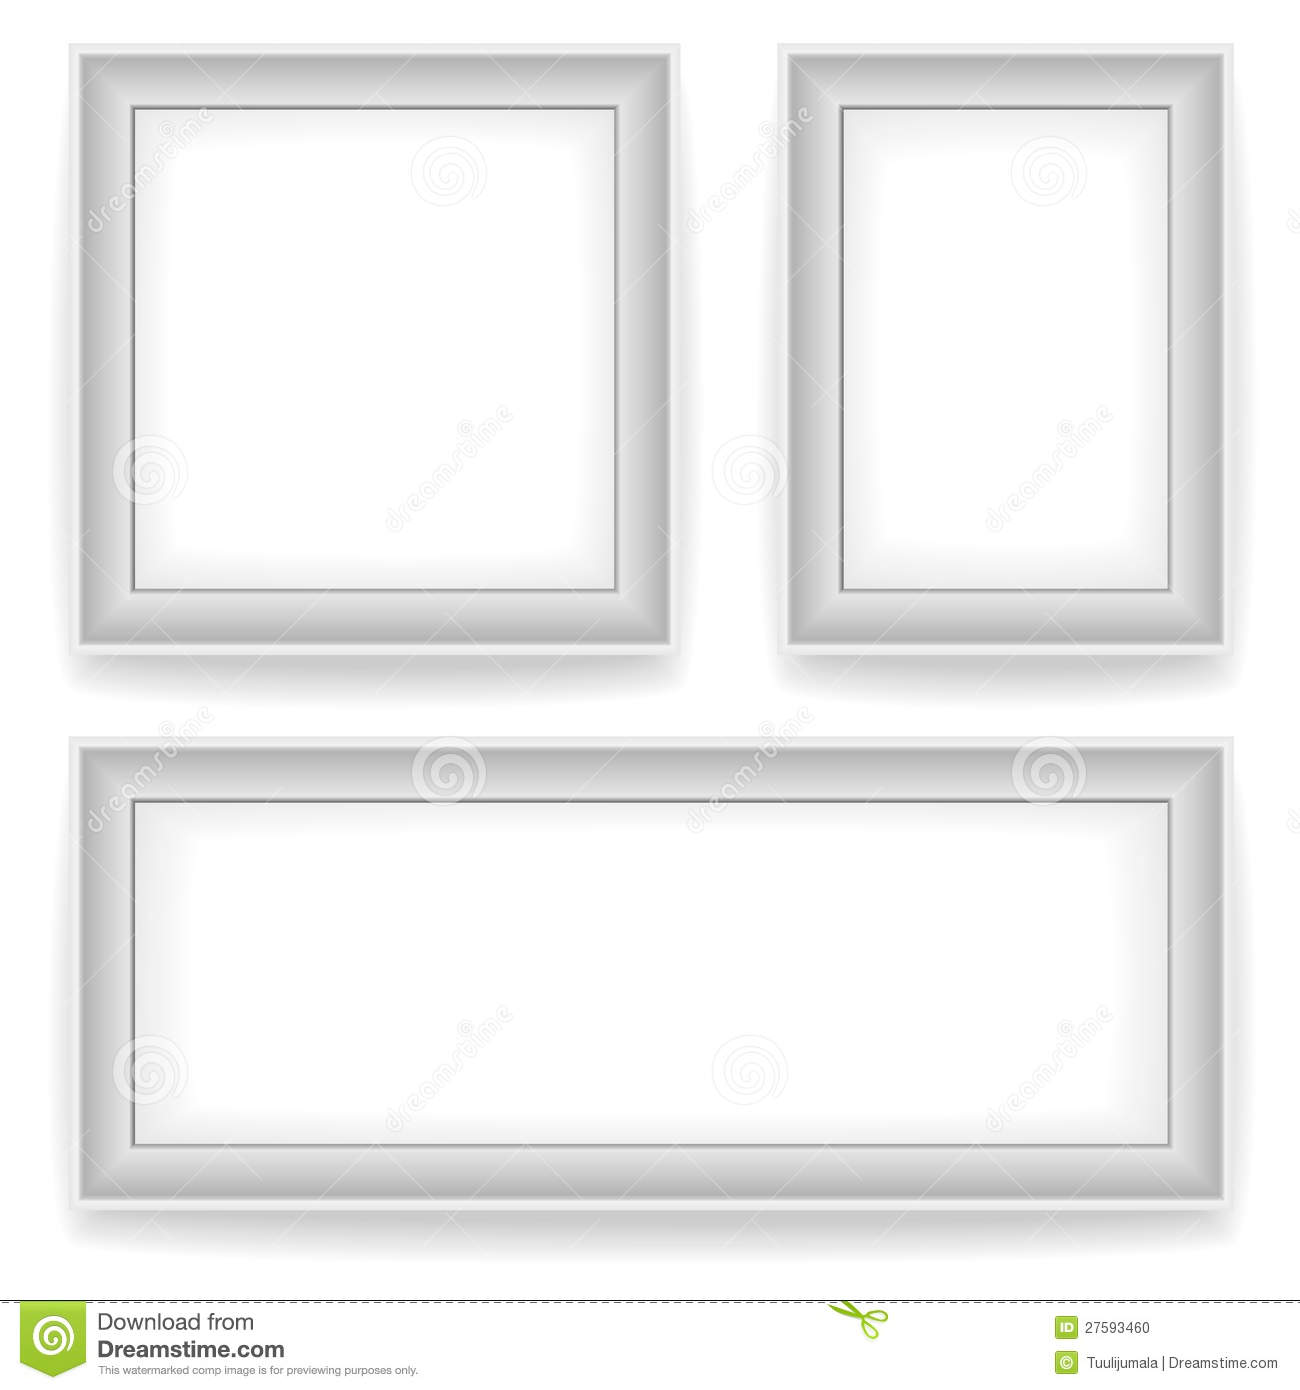 Blank white wall picture frames stock photo image 27593460 - White wall picture frames ...